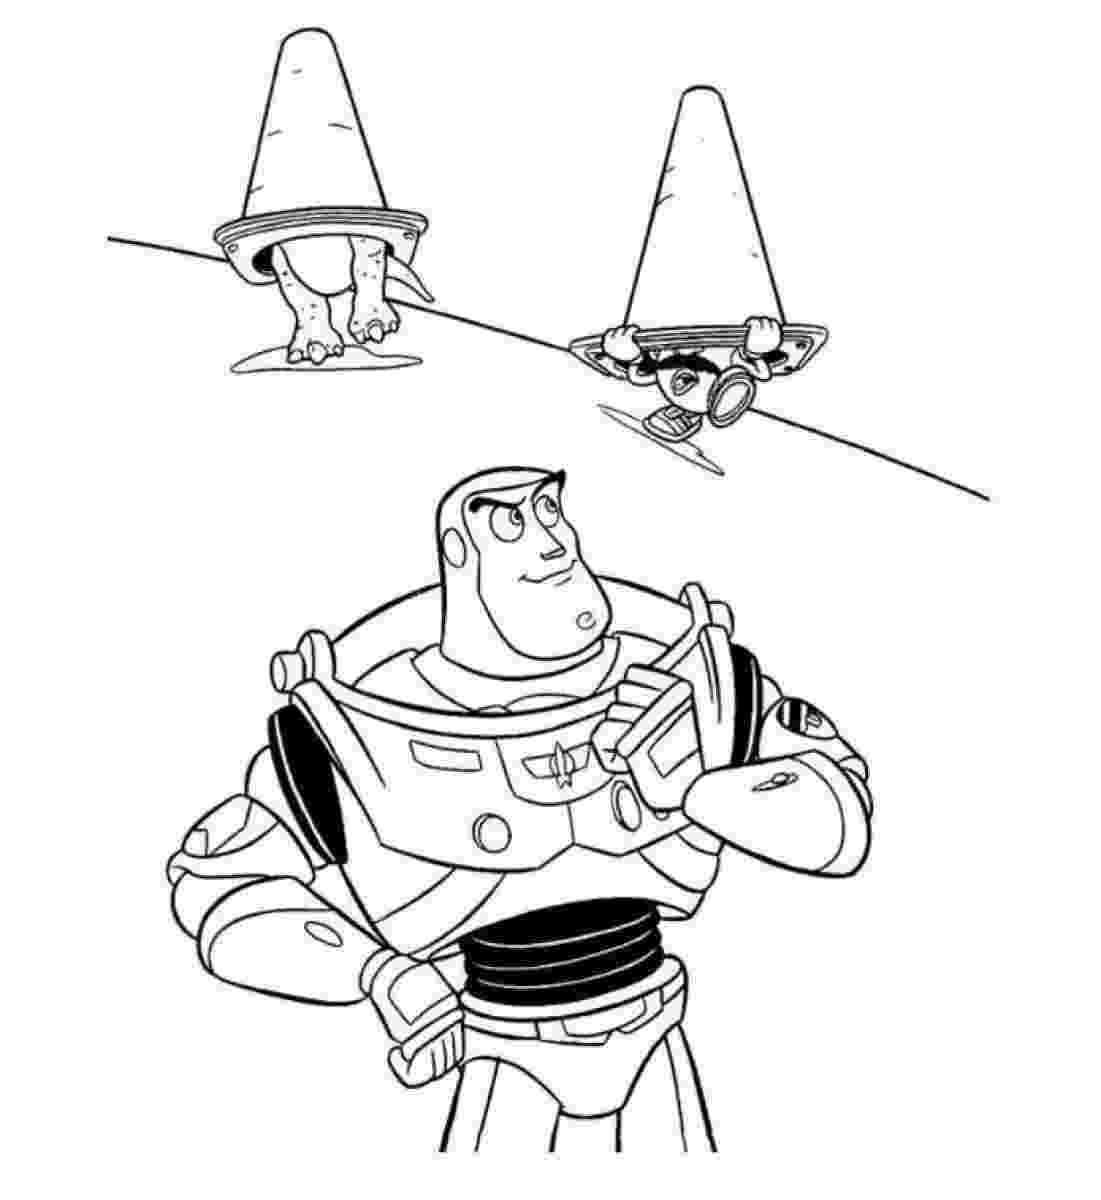 buzz lightyear printable coloring pages free printable buzz lightyear coloring pages for kids buzz coloring lightyear pages printable